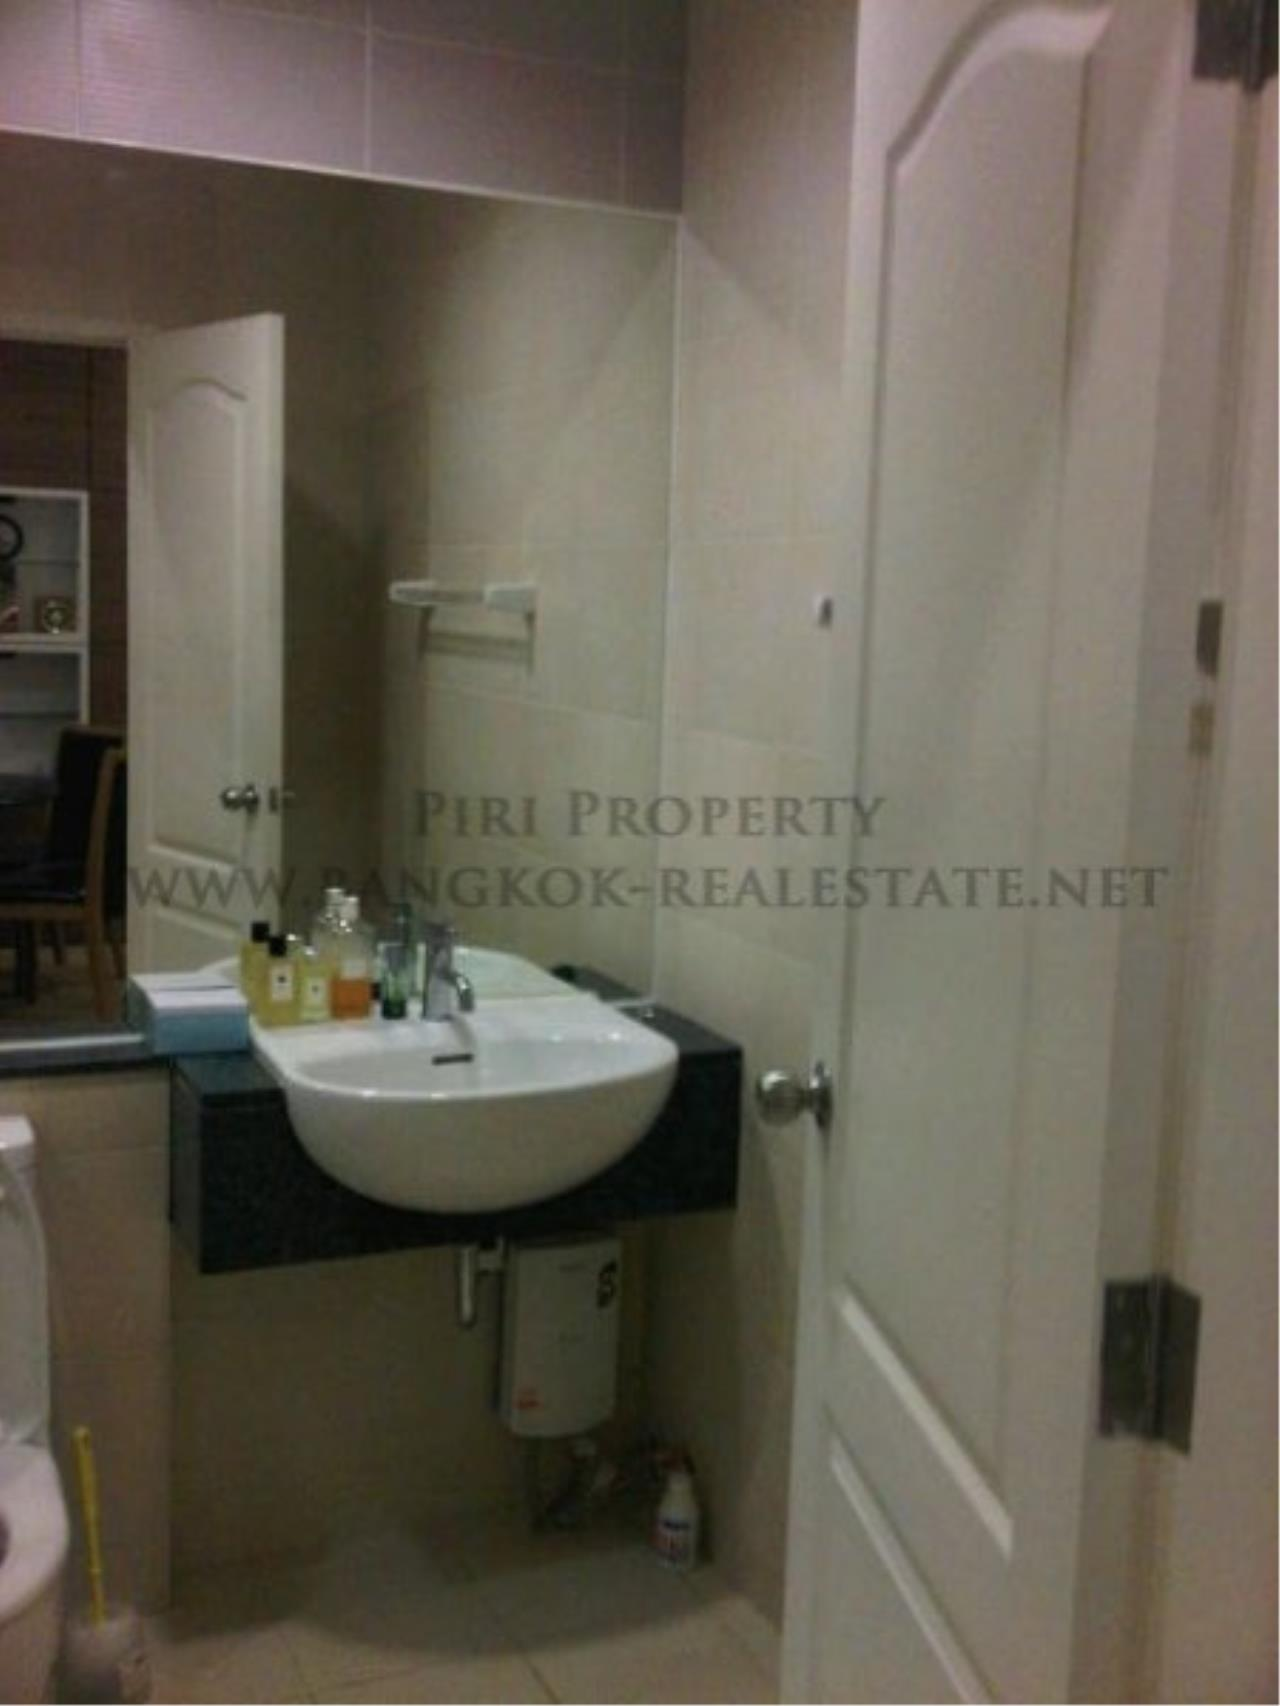 Piri Property Agency's 2 Bedroom Condo in the Lighthouse Condominium for sale - 27th Floor 6